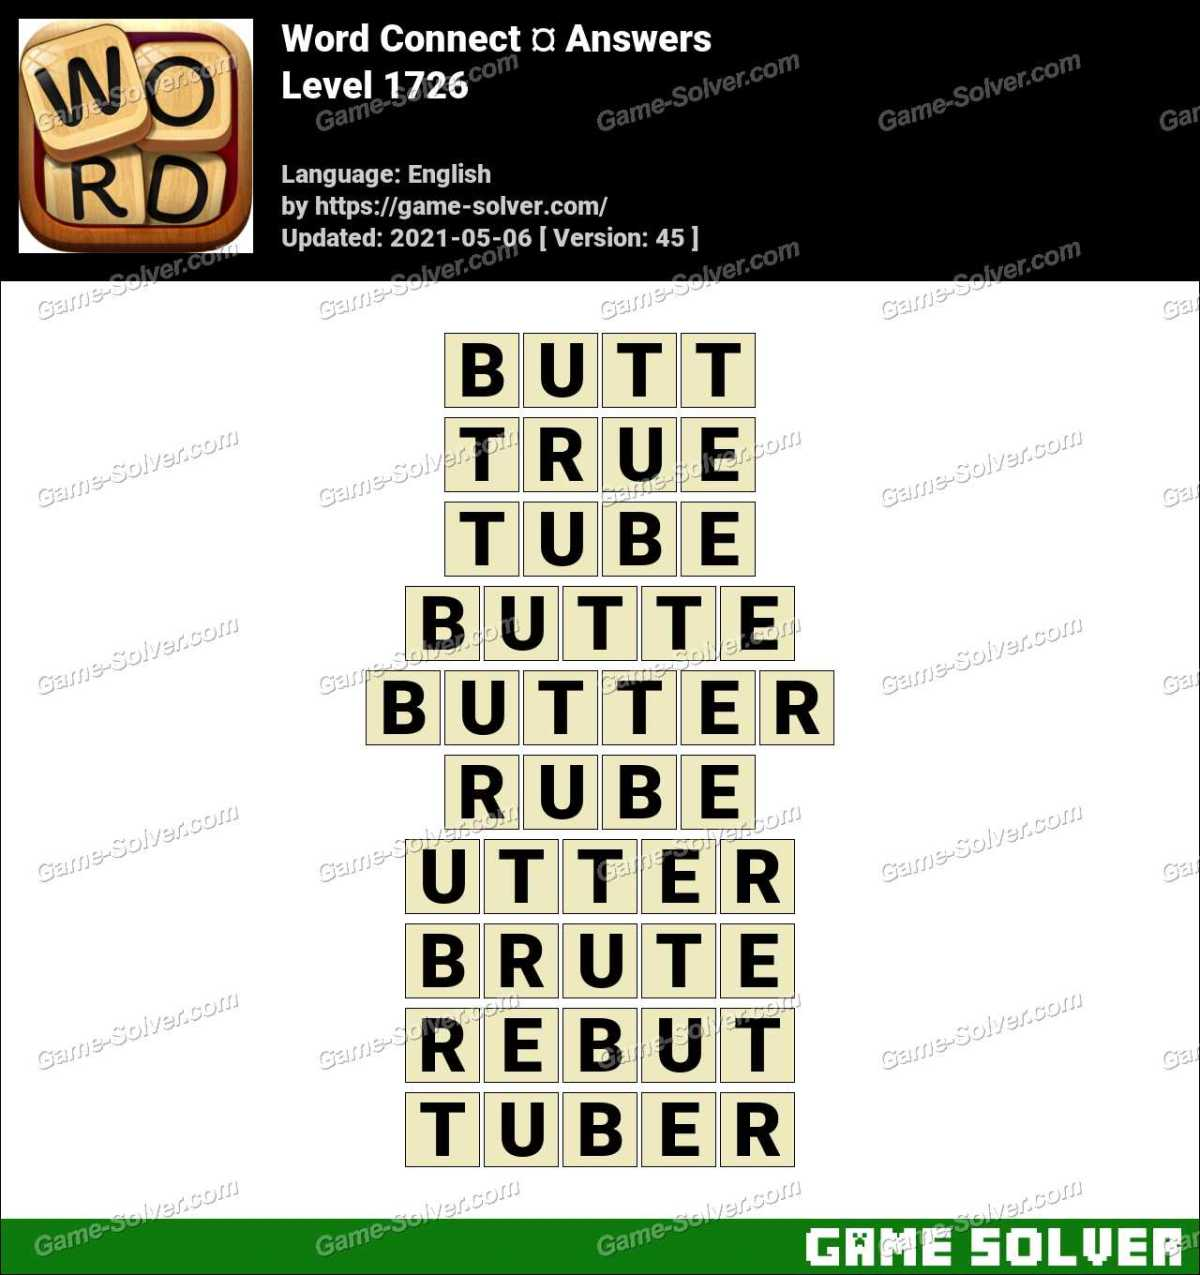 Word Connect Level 1726 Answers